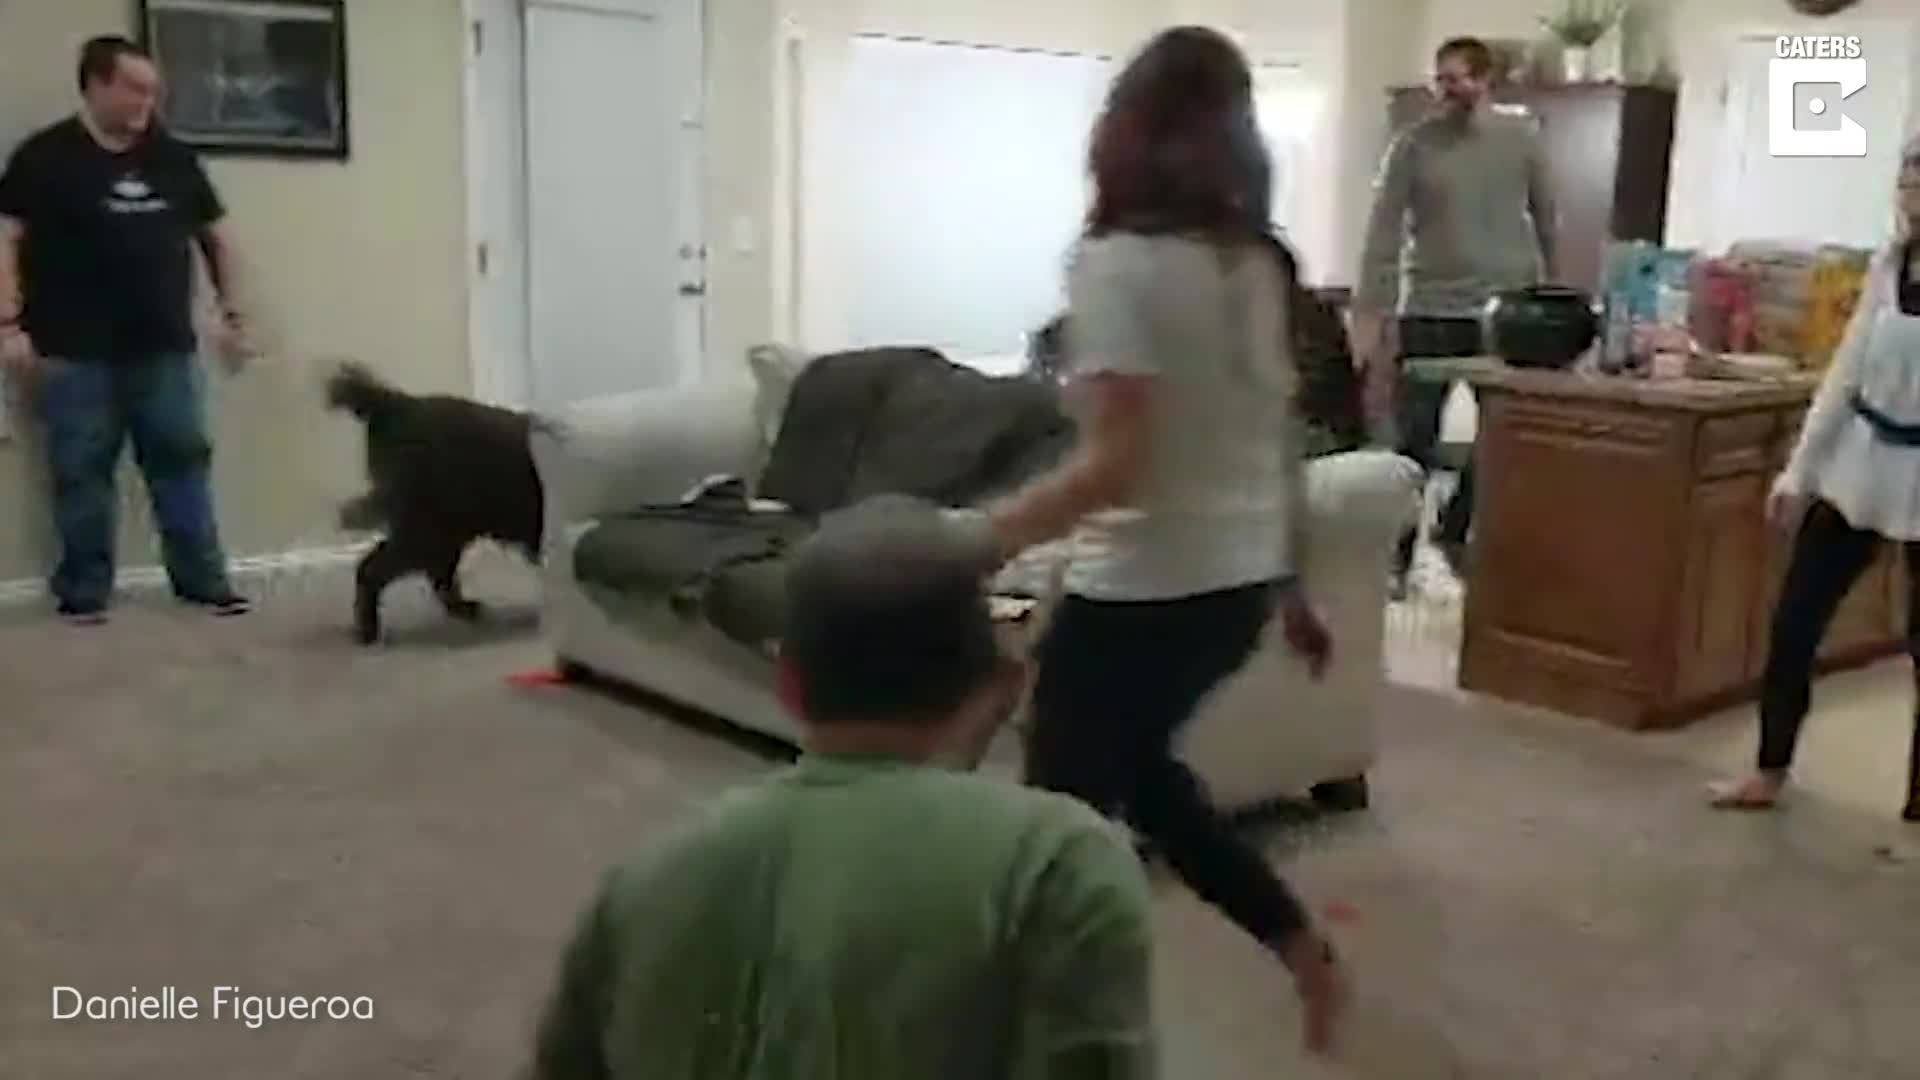 CREATIVE FRIENDS DESIGN HILARIOUS PARTY GAME USING BALLOONS AND DOG